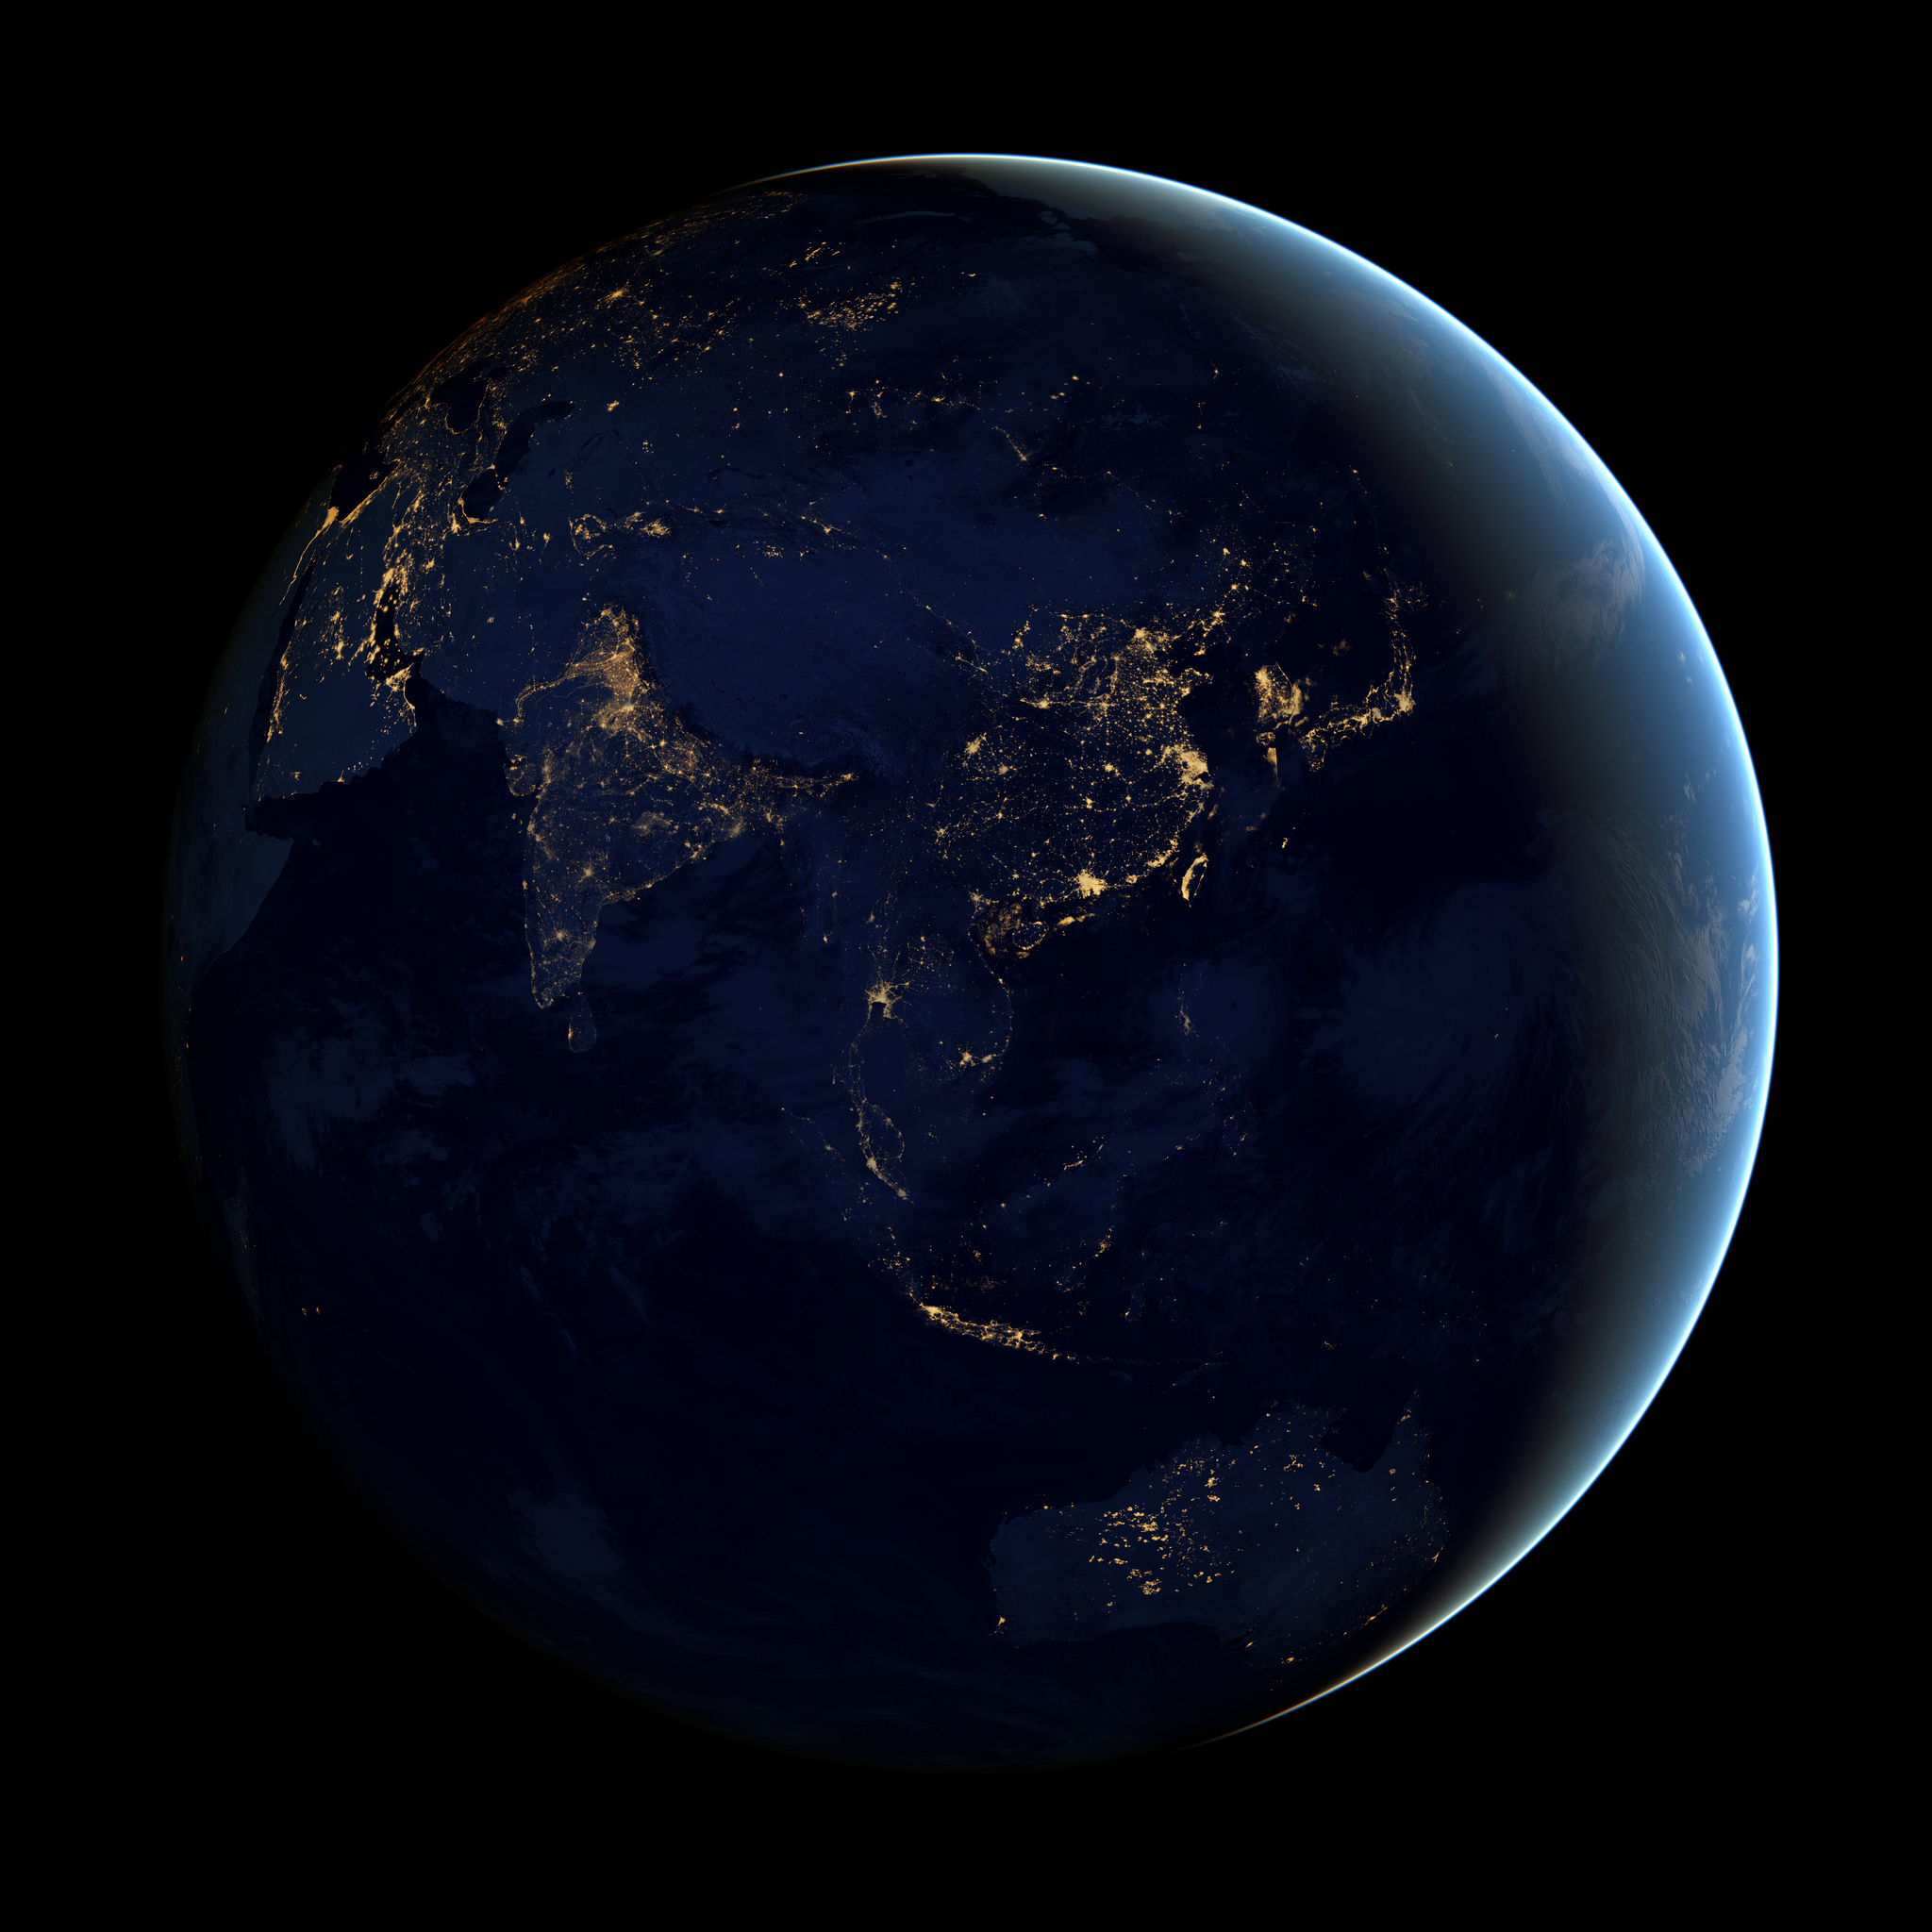 """""""For China, it looks like industrial growth [has the greatest impact on water shortages] as people get wealthier,"""" Charles Fant says. """"In India, population growth has a huge effect. It varies by region."""" - Image Credit:    NASA Goddard Space Flight Center/Flickr    CC BY"""